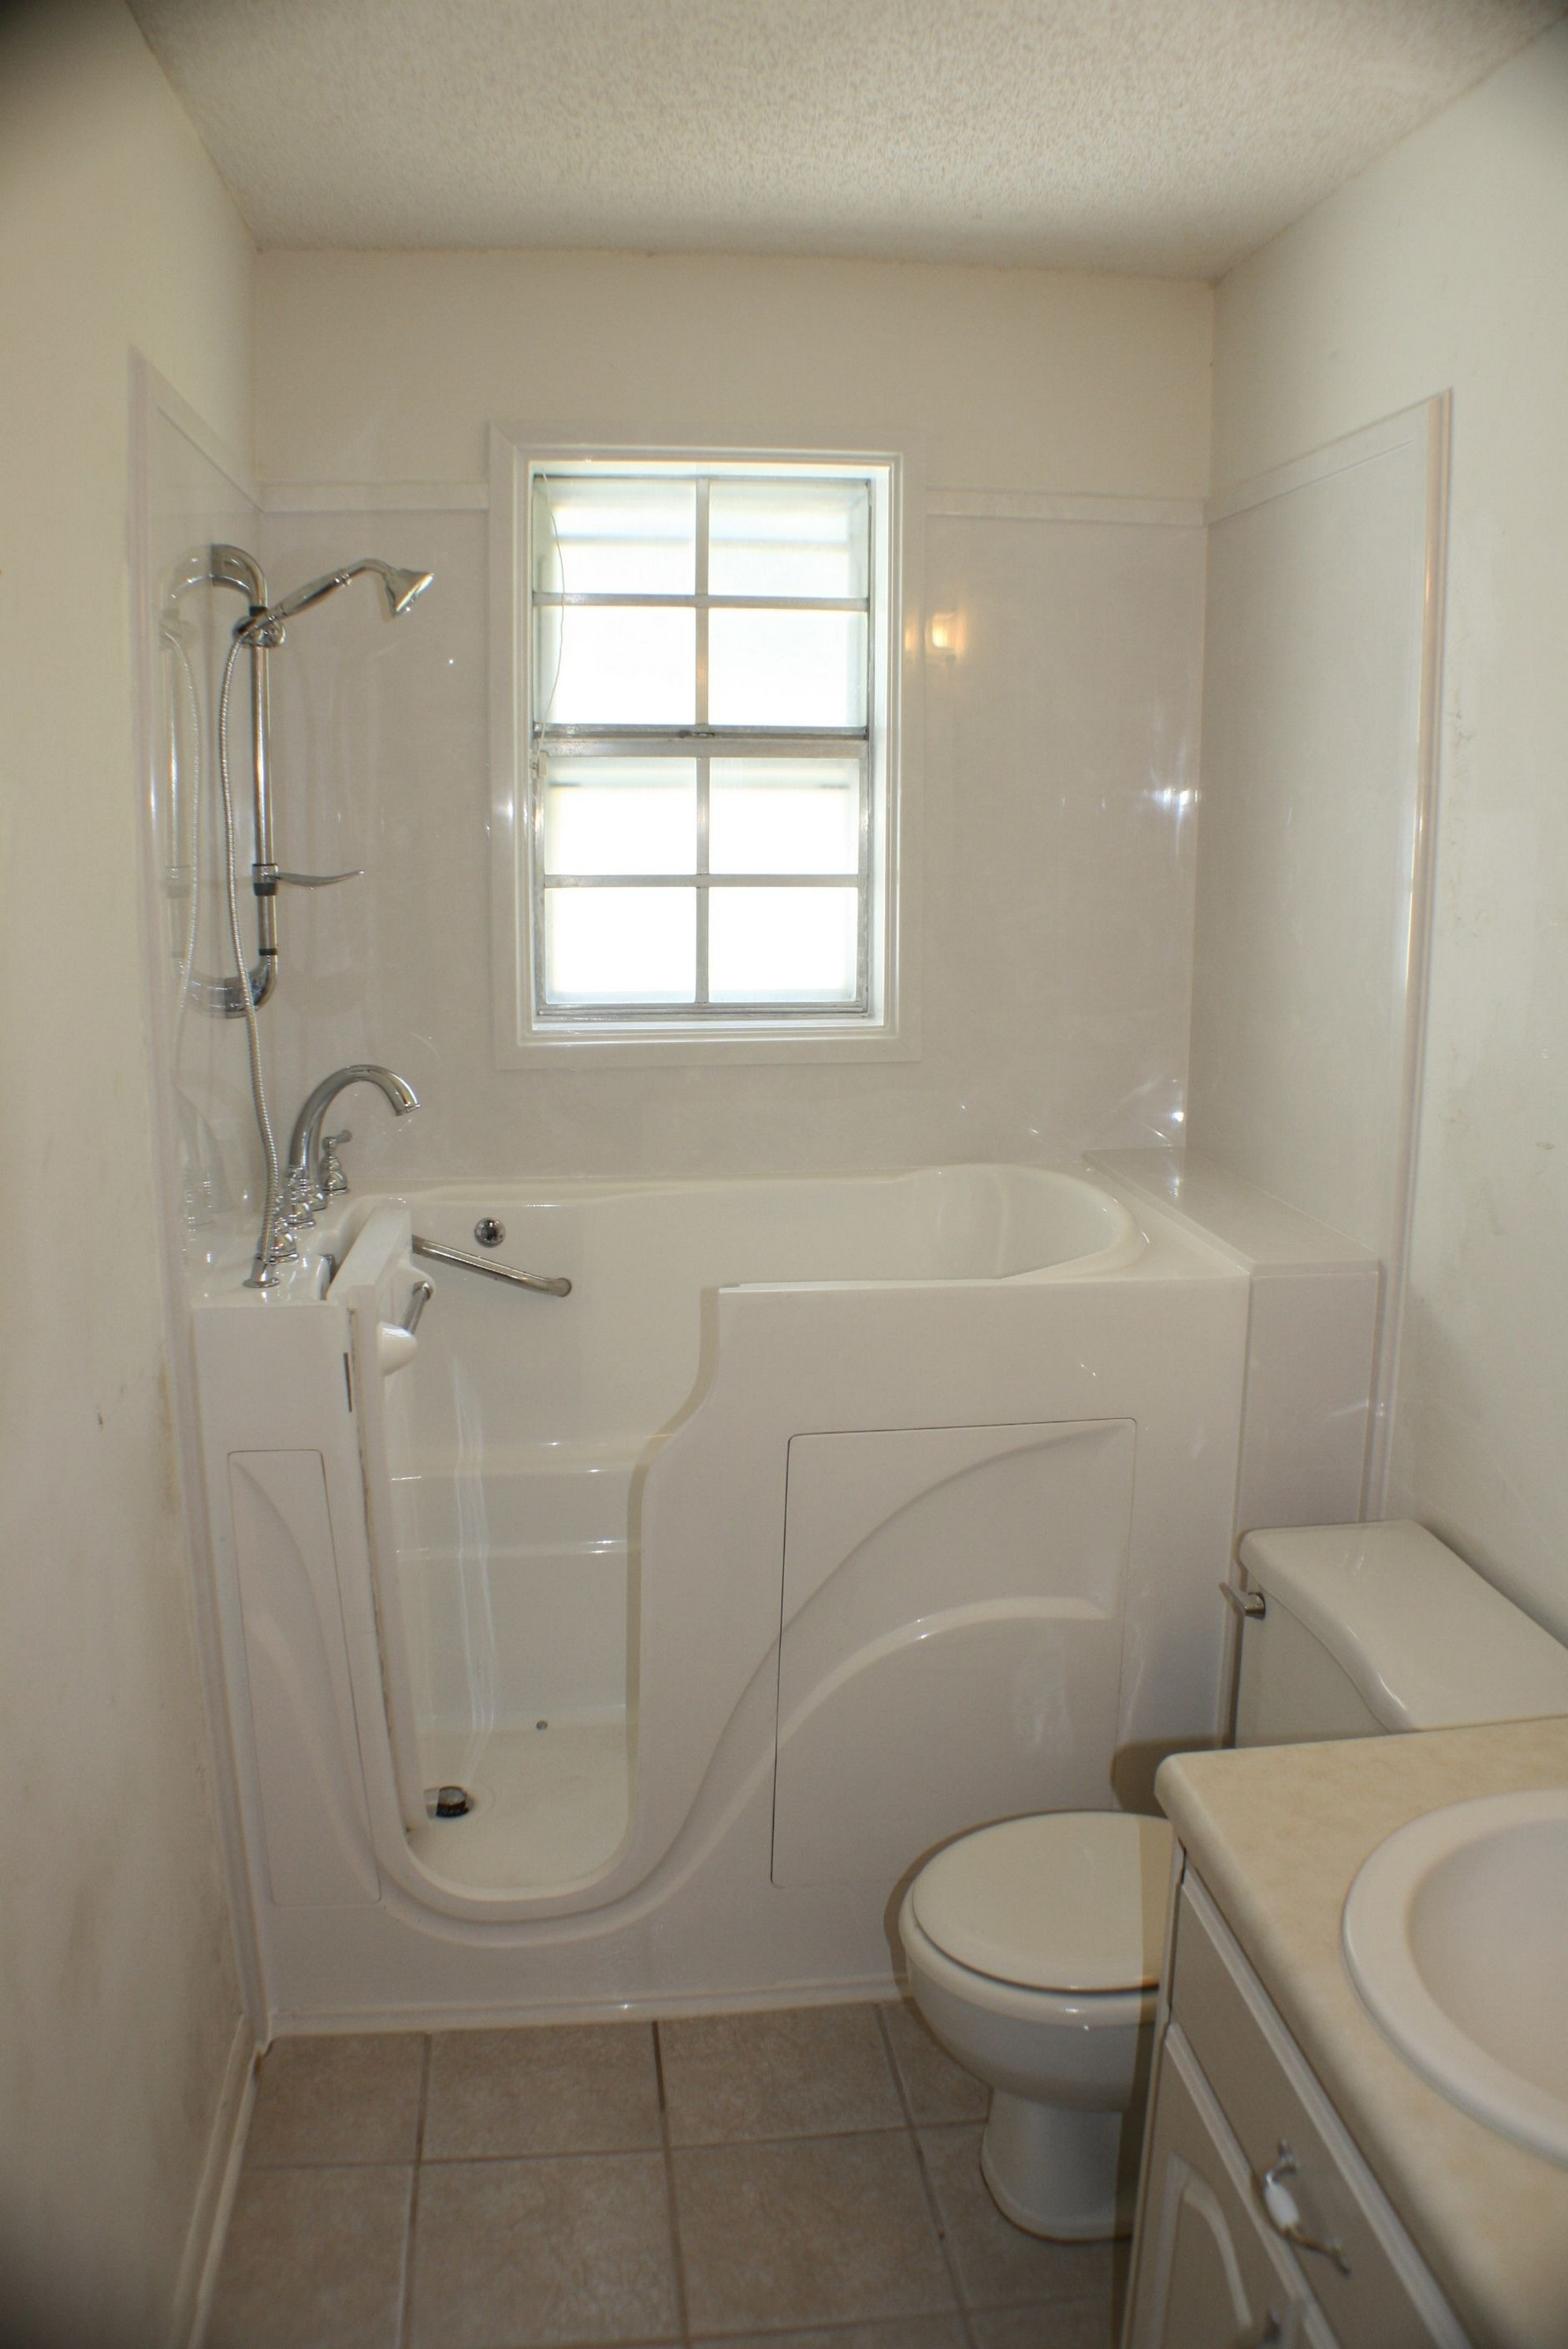 21 Most Popular Model Of Bathtubs And Showers Tips To Choosing For Your Bathroom 14